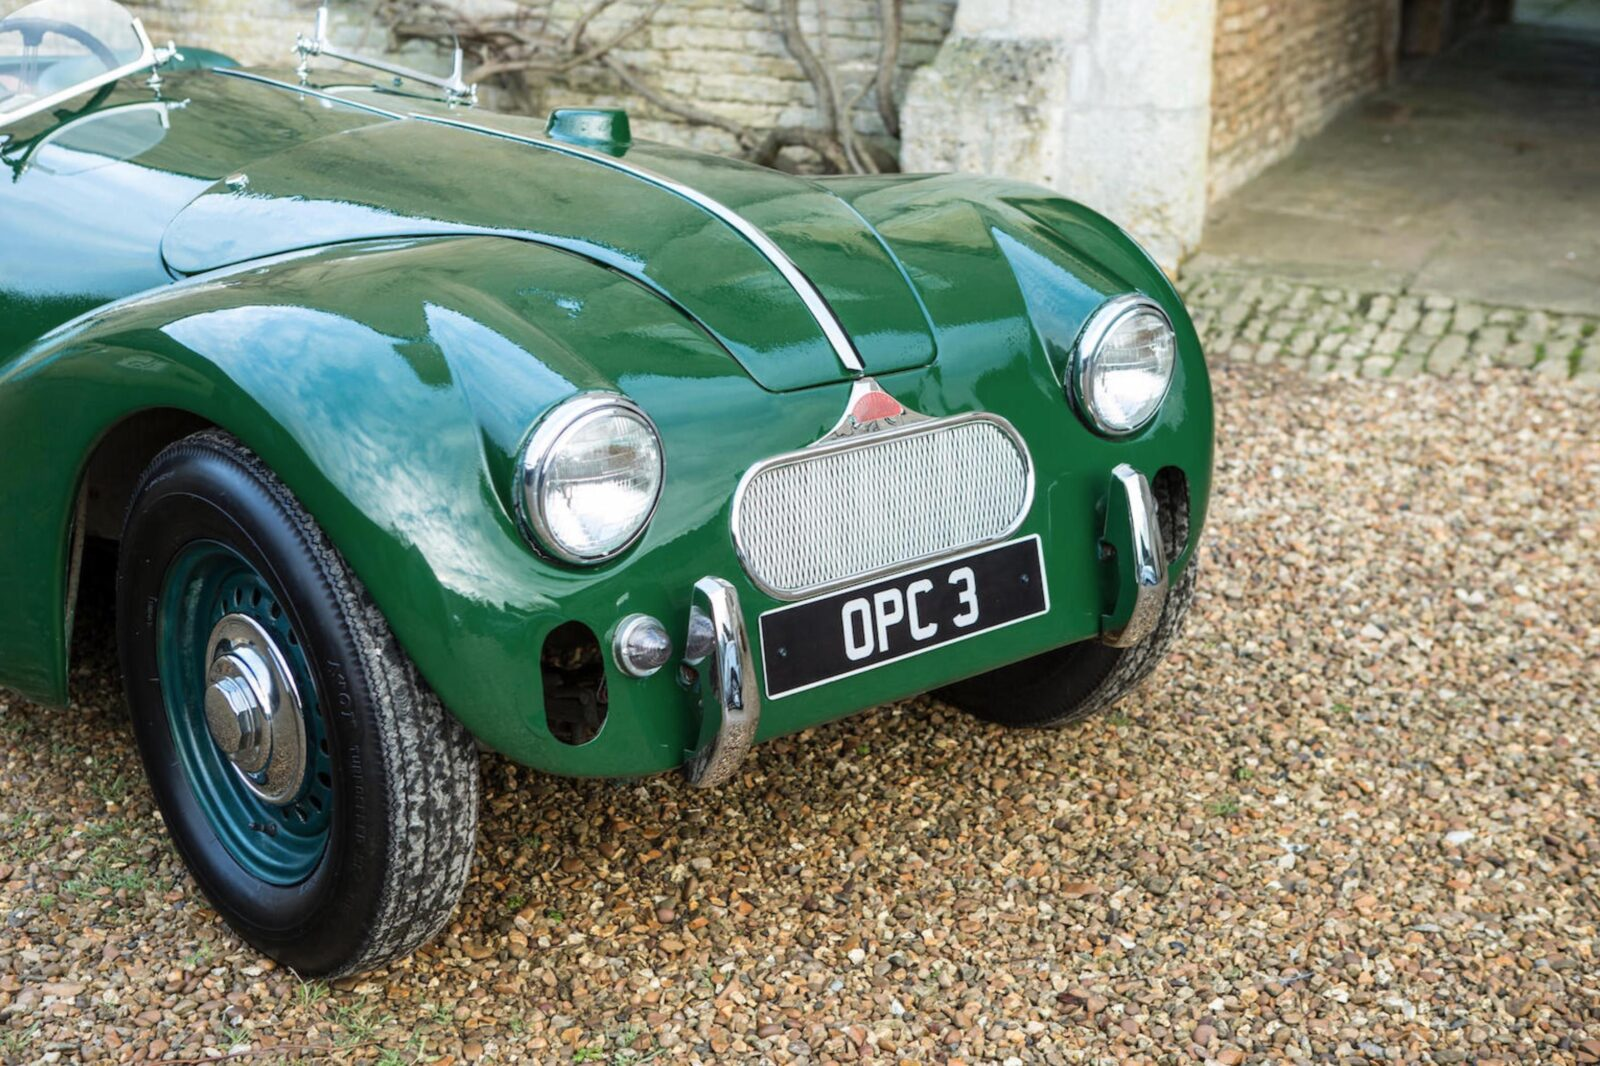 Connaught L2 Car 1600x1066 - Rare British Racer: 1949 Connaught L2 2½-litre Sports-Racing Car